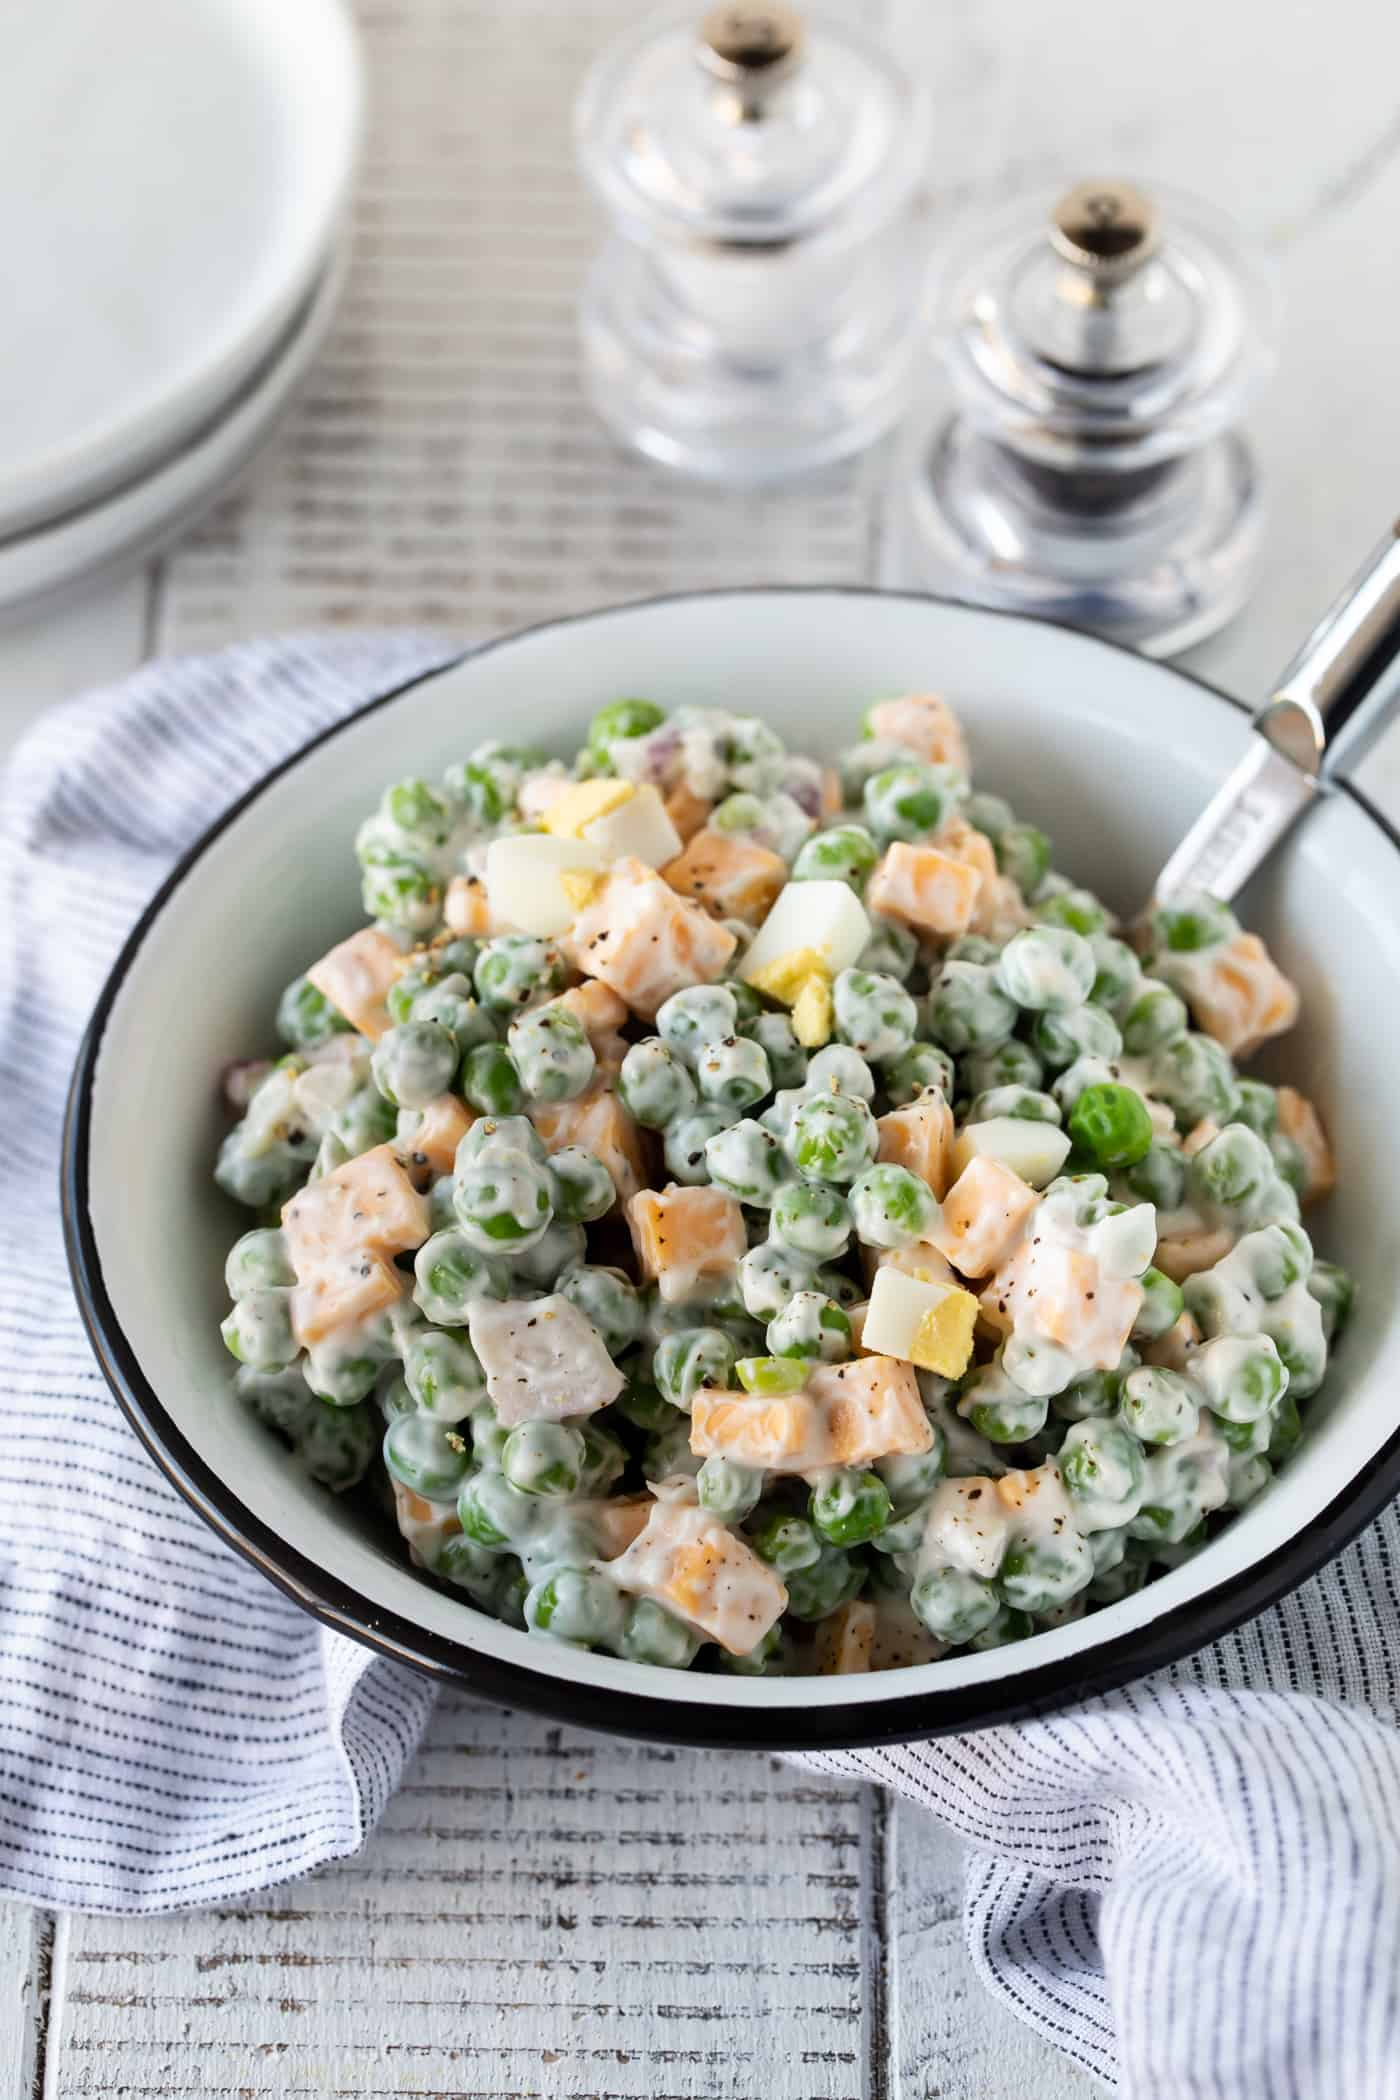 Easy Pea and Cheese Salad in a white bowl on a white background with salt and pepper shaker on the side.